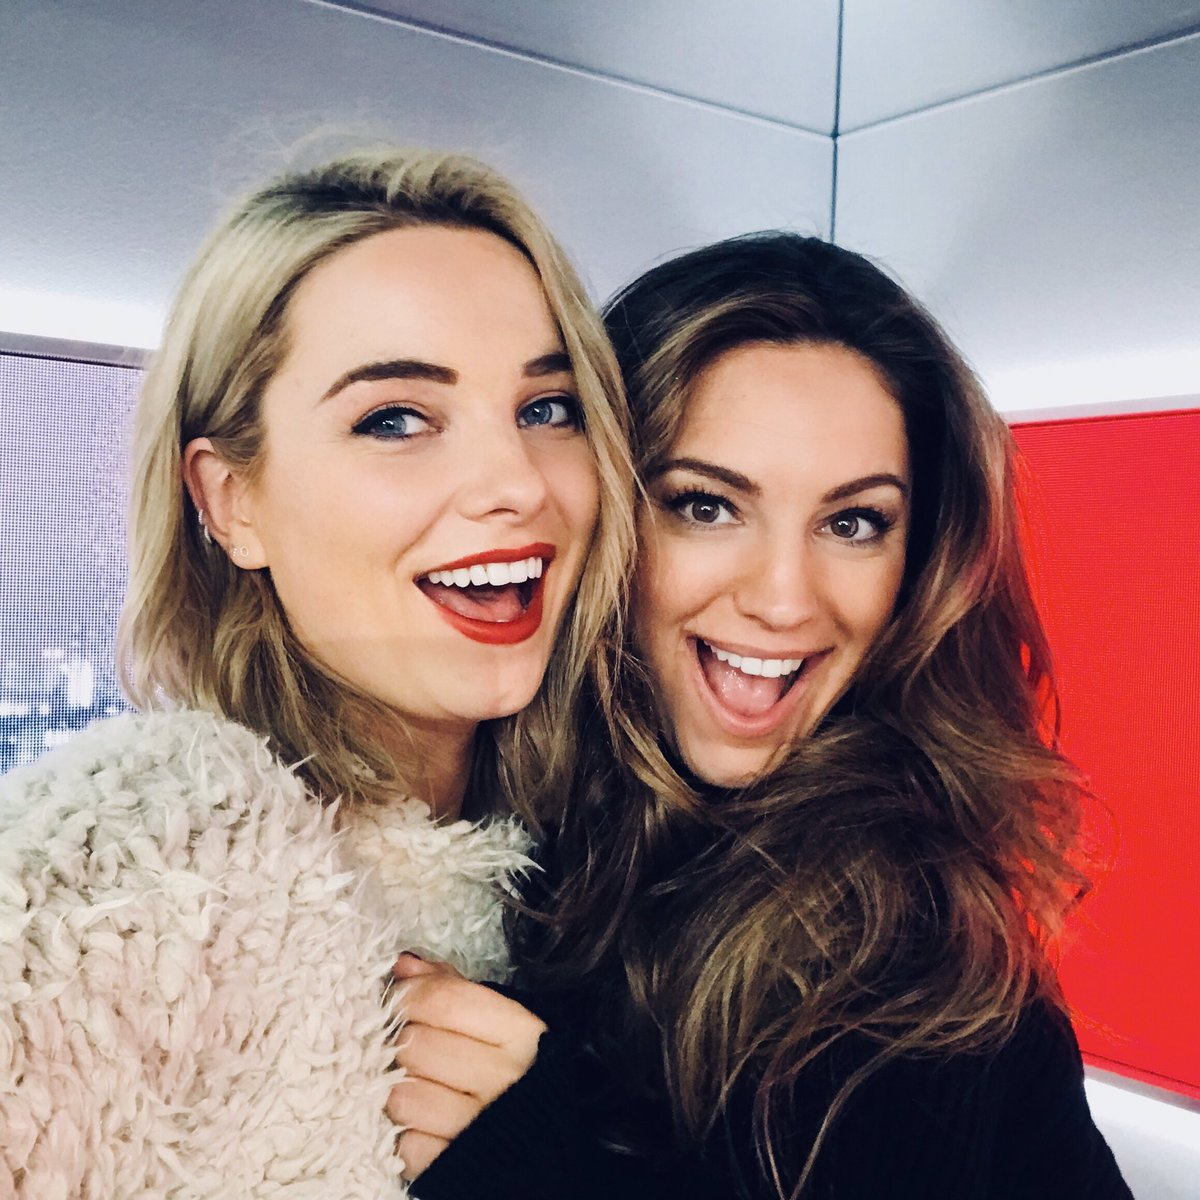 RT @Sianwelby: If you're not listening to @thisisheart you're missing out! ???? @IAMKELLYBROOK https://t.co/kEIiPc0QgV